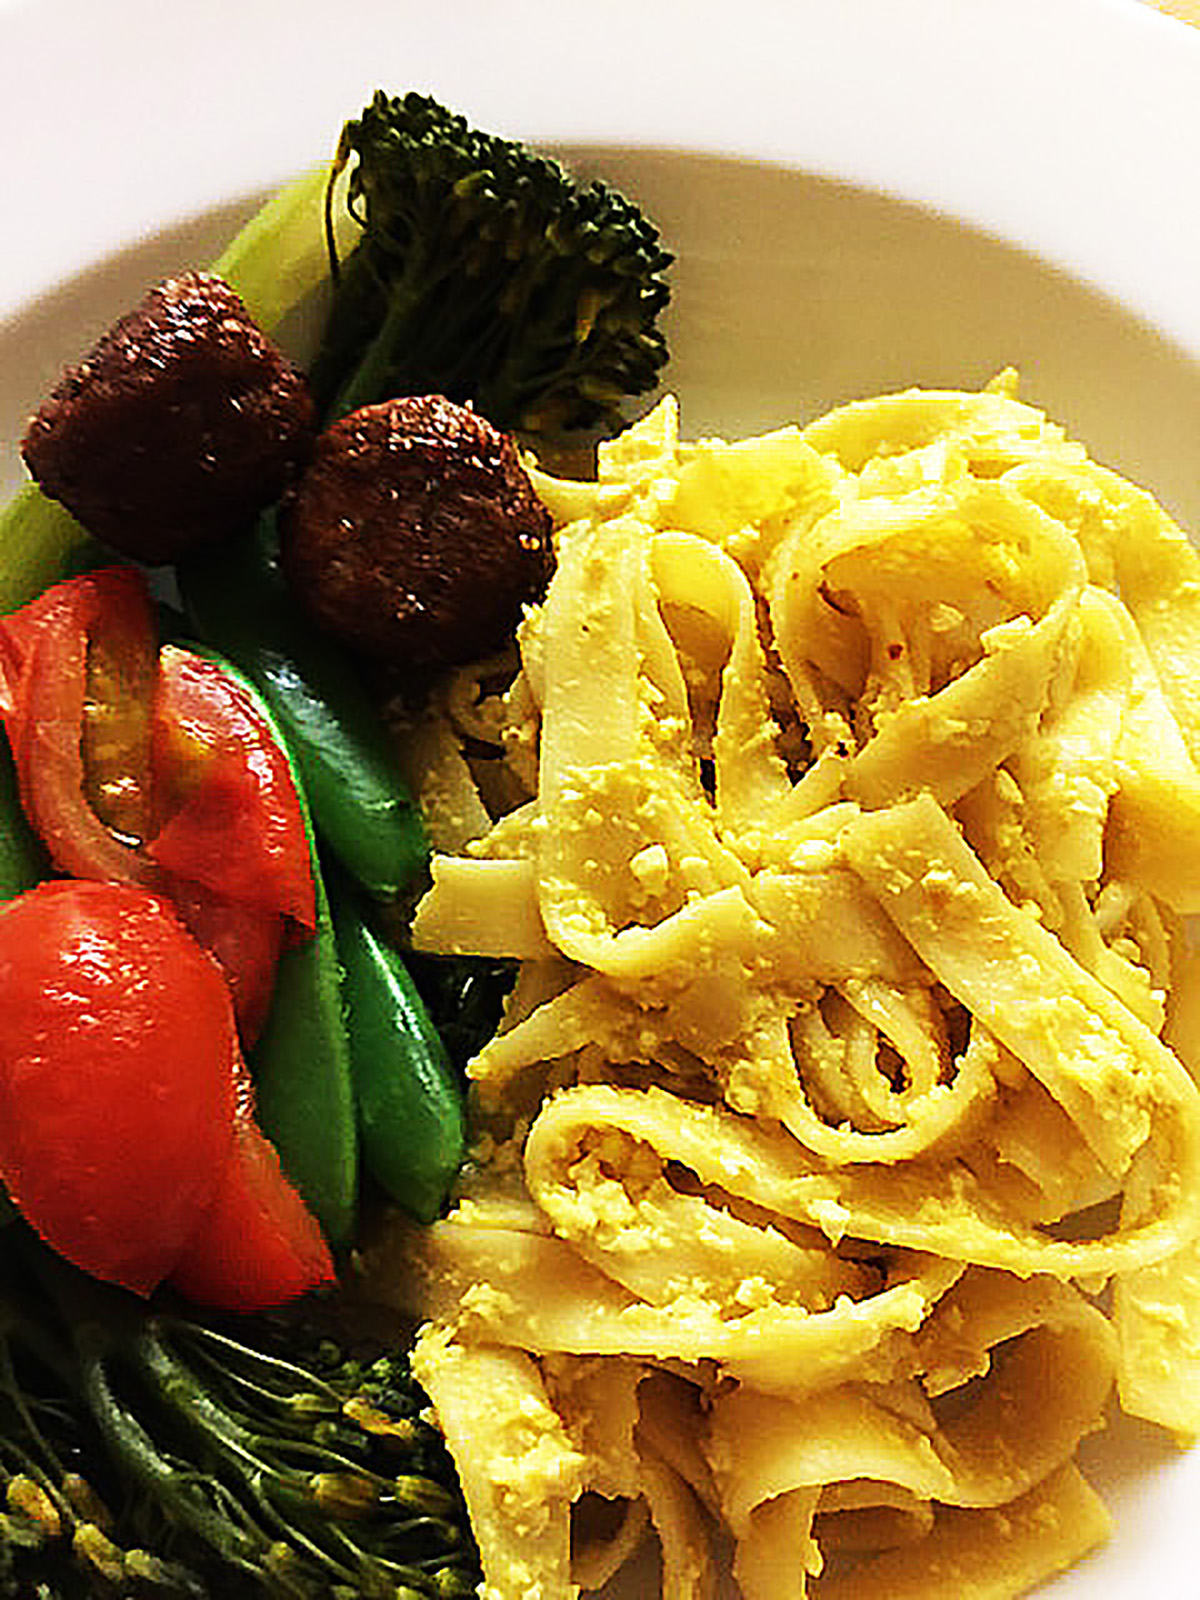 Lemony Thick Pasta Tossed with Eggless Egg